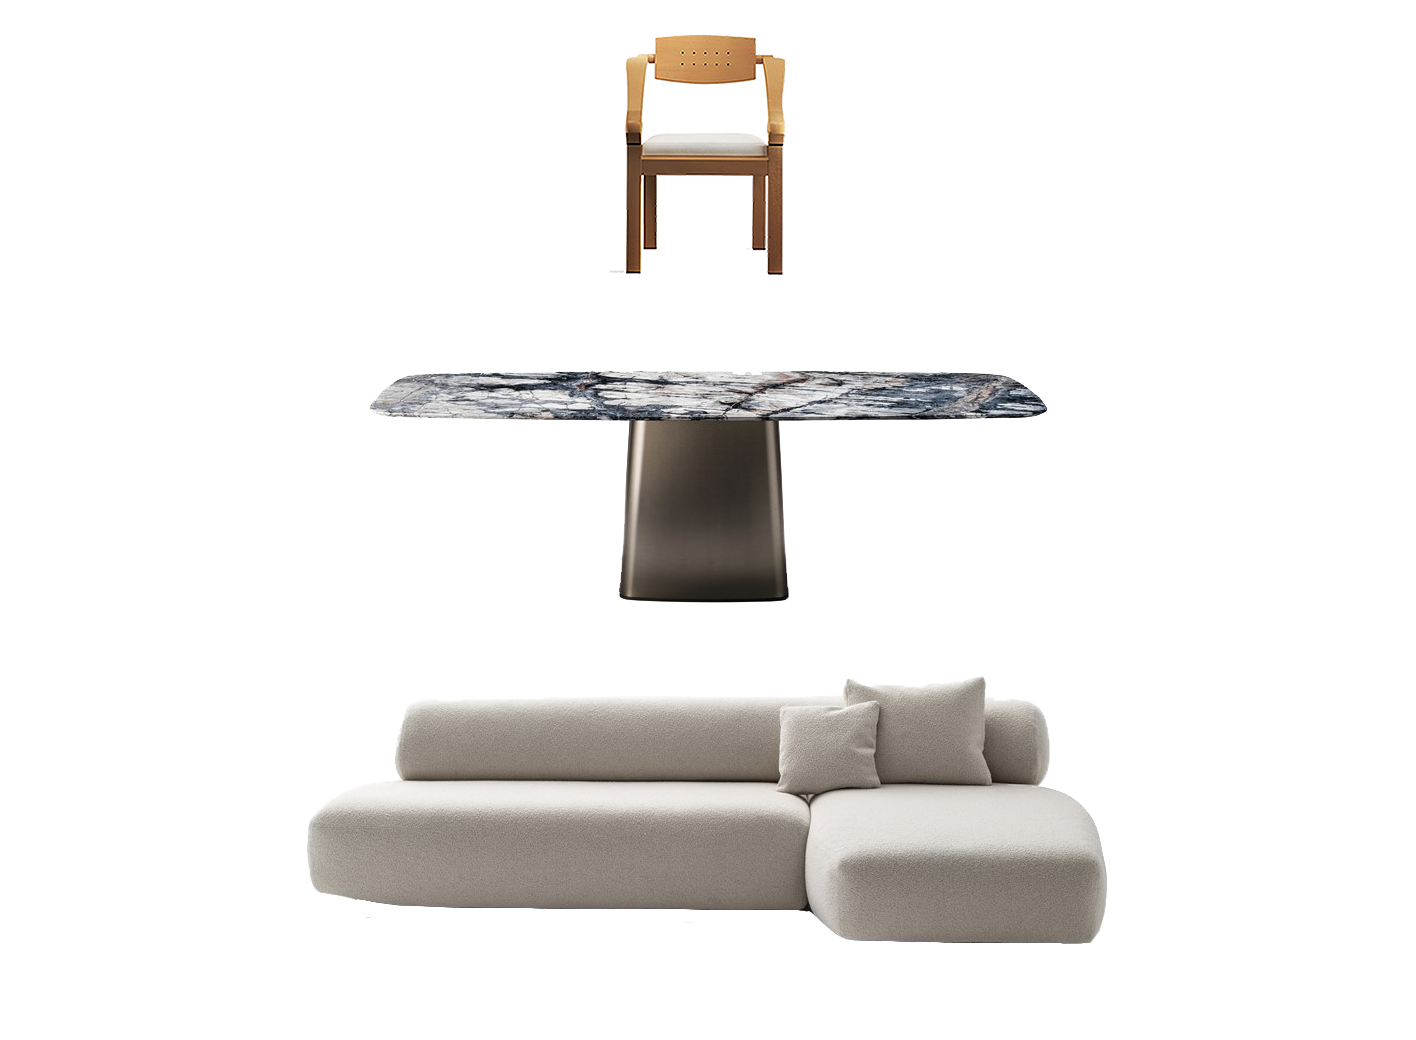 Giorgetti Spring Wooden Chair, Arketipo Icon Table, Moroso Gogan Sofa